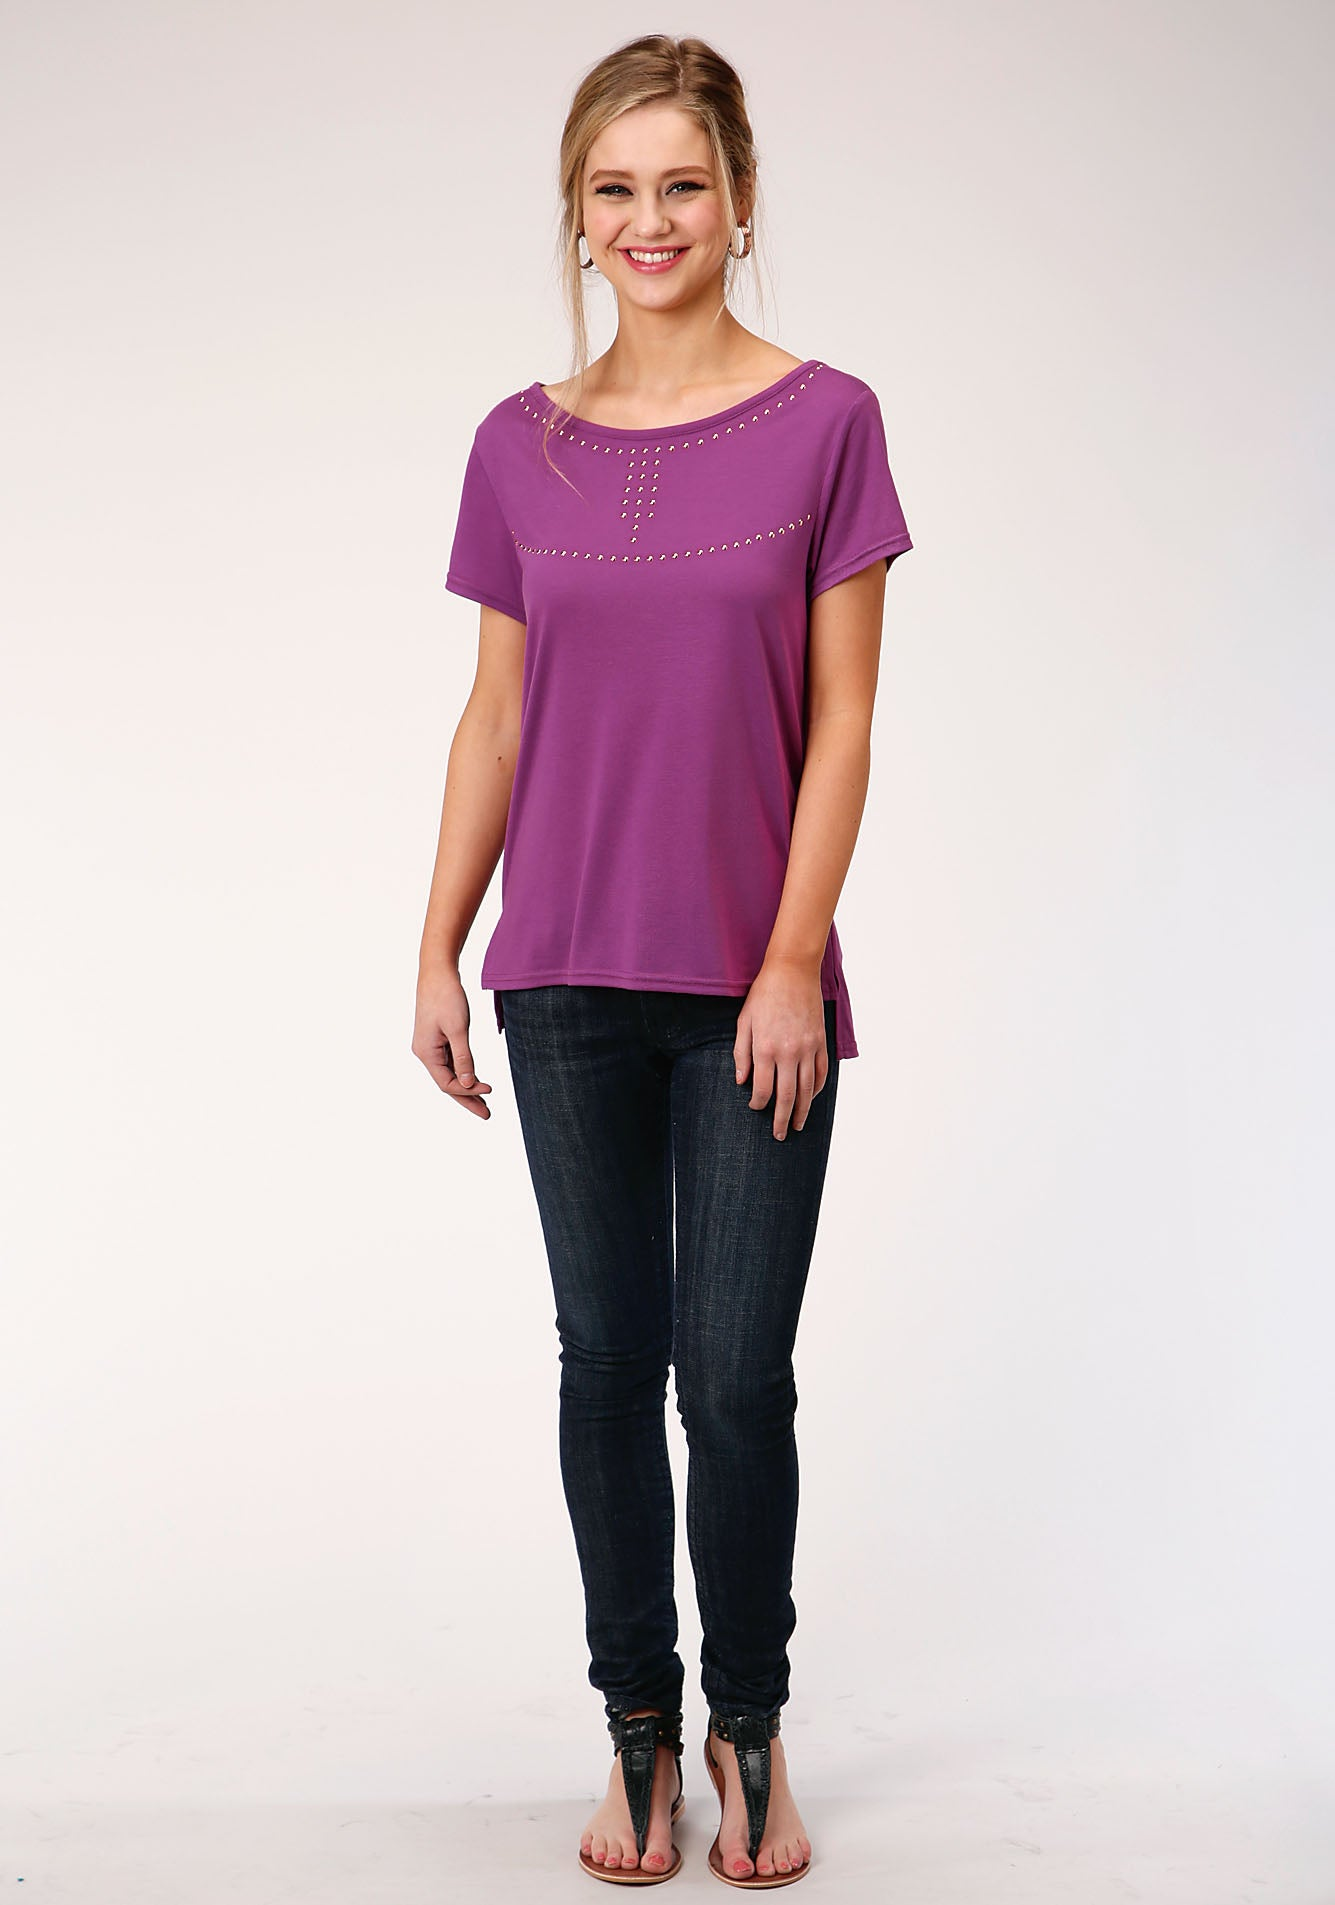 ROPER WOMENS PURPLE 00134 POLY RAYON JERSEY TEE FIVE STAR COLLECTION- SPRING II SHORT SLEEVE